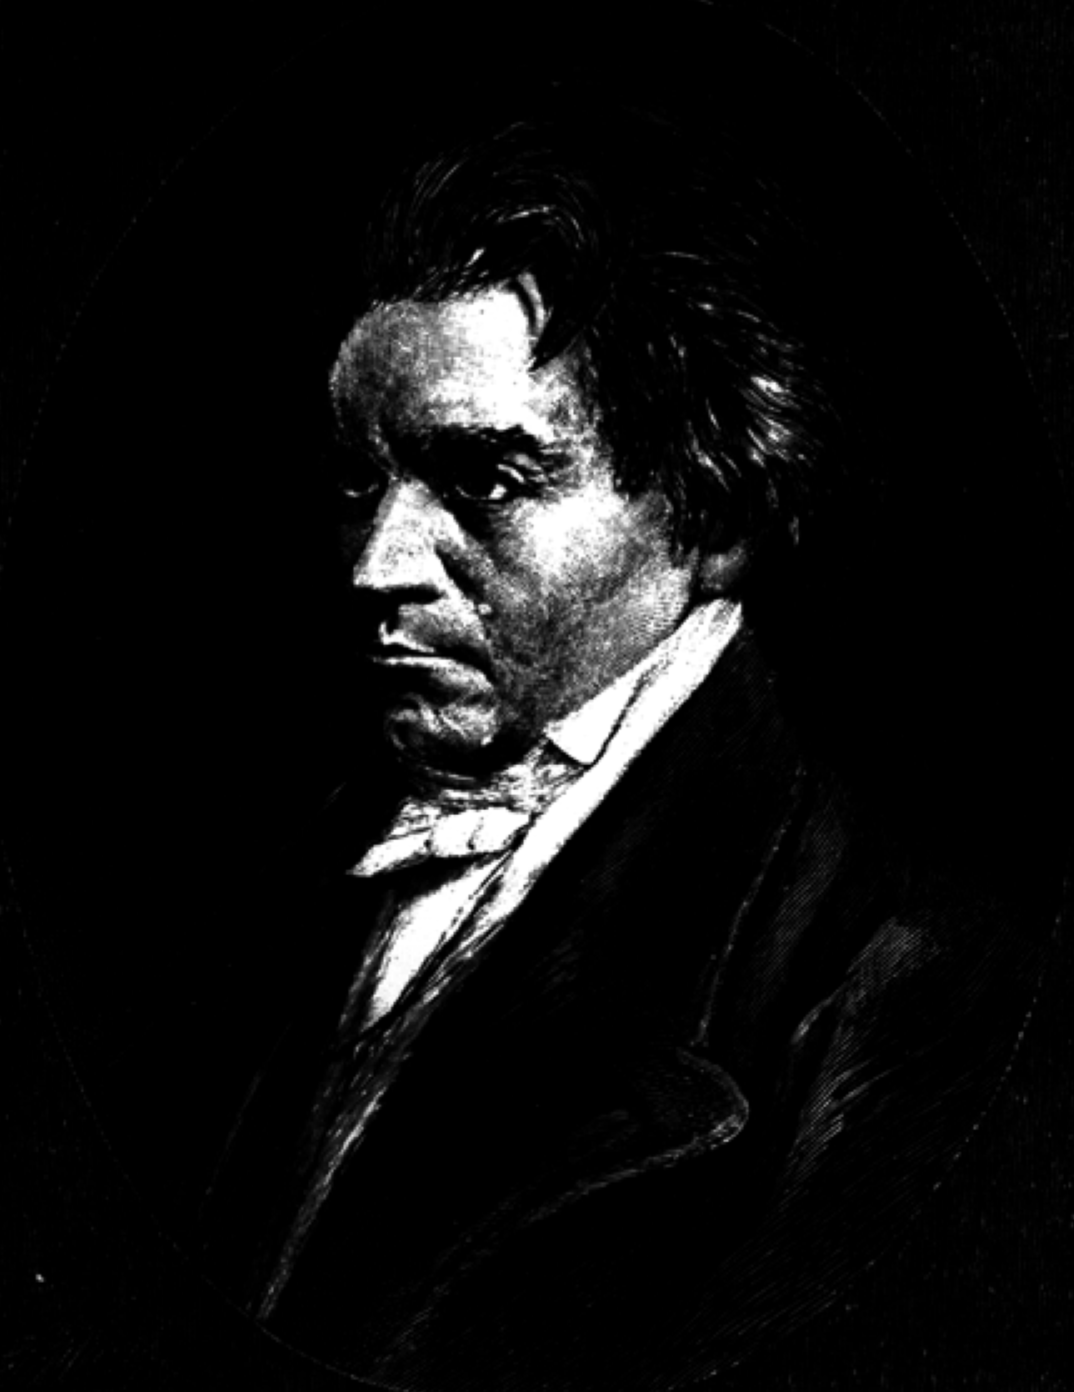 Beethoven image PD